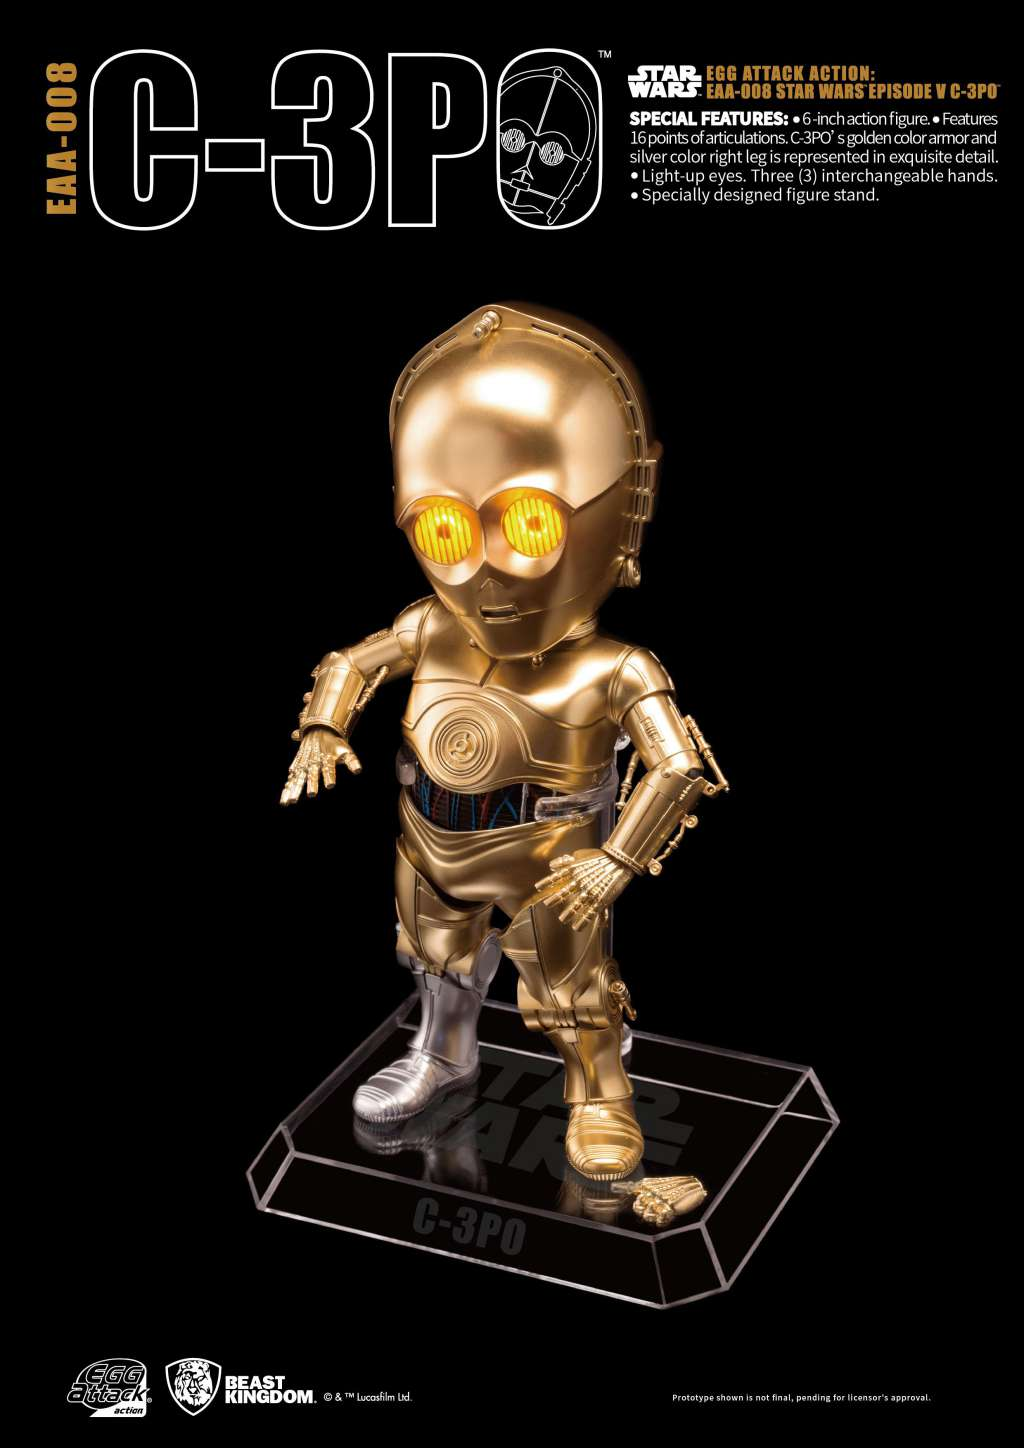 Star Wars Egg Attack Figura C-3PO Episodio V 03